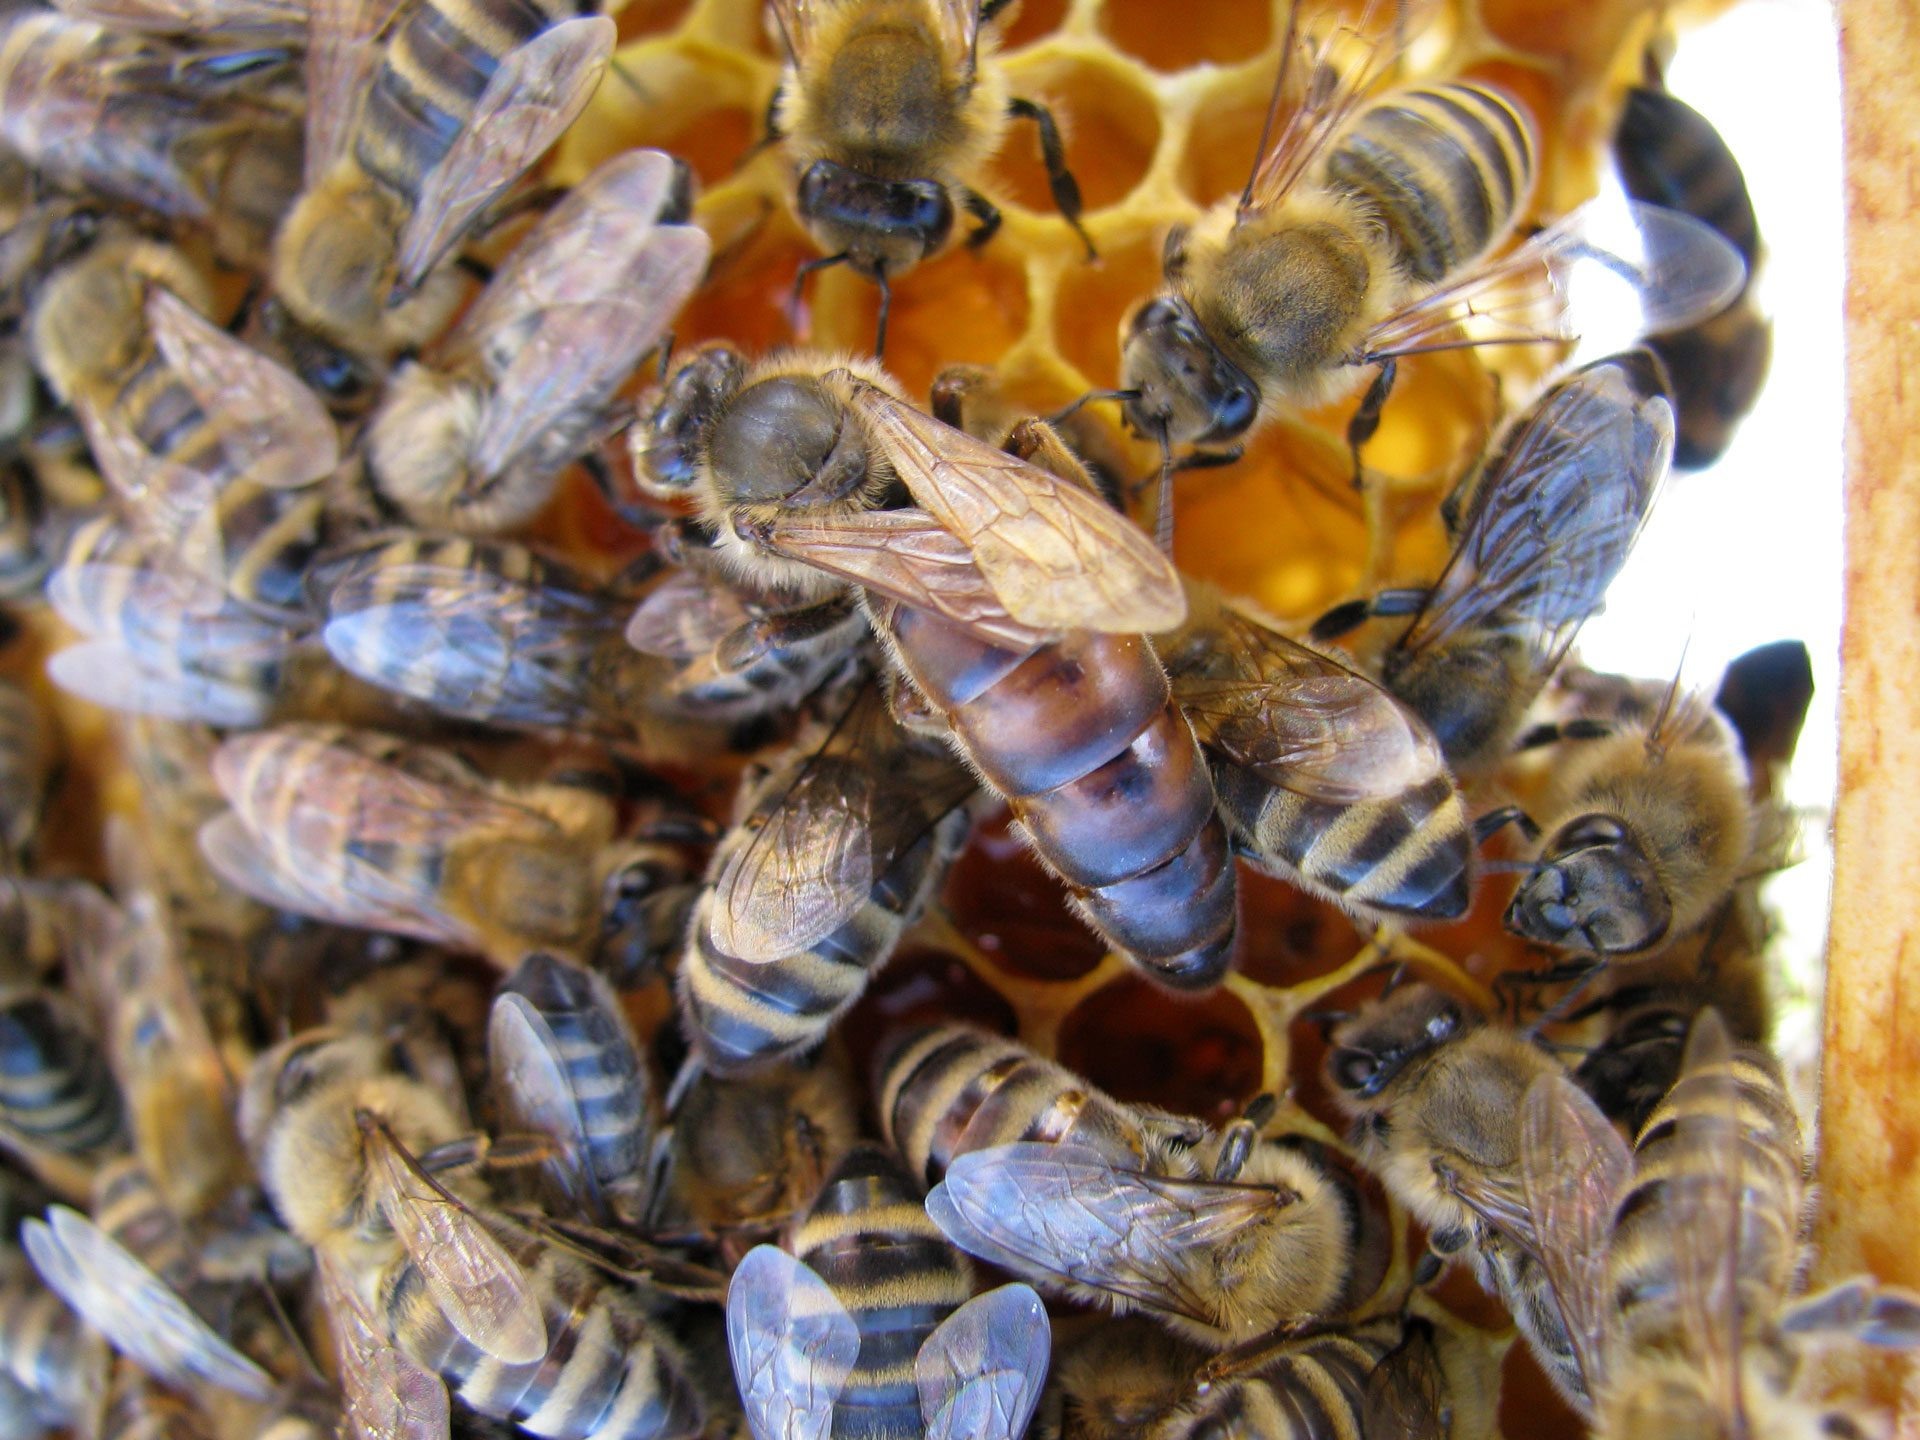 Apis_m_carnica_queen_bee_medokost-Authentic-Apis-mellifera-carnica